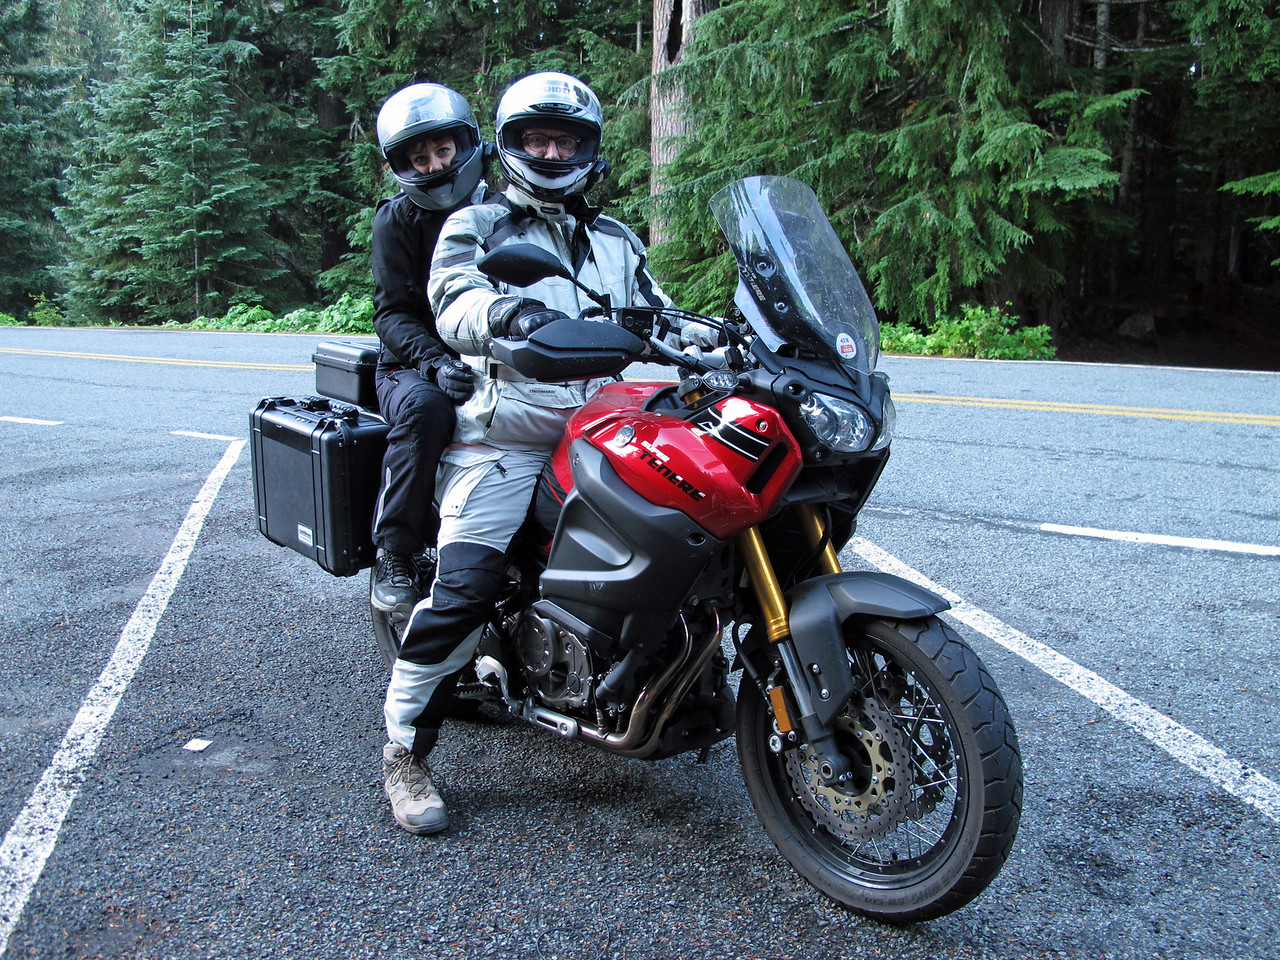 Megan and Dave on their cool bike at the Summerland Trailhead in Mt. Rainier National Park before our hike (7:30 am).